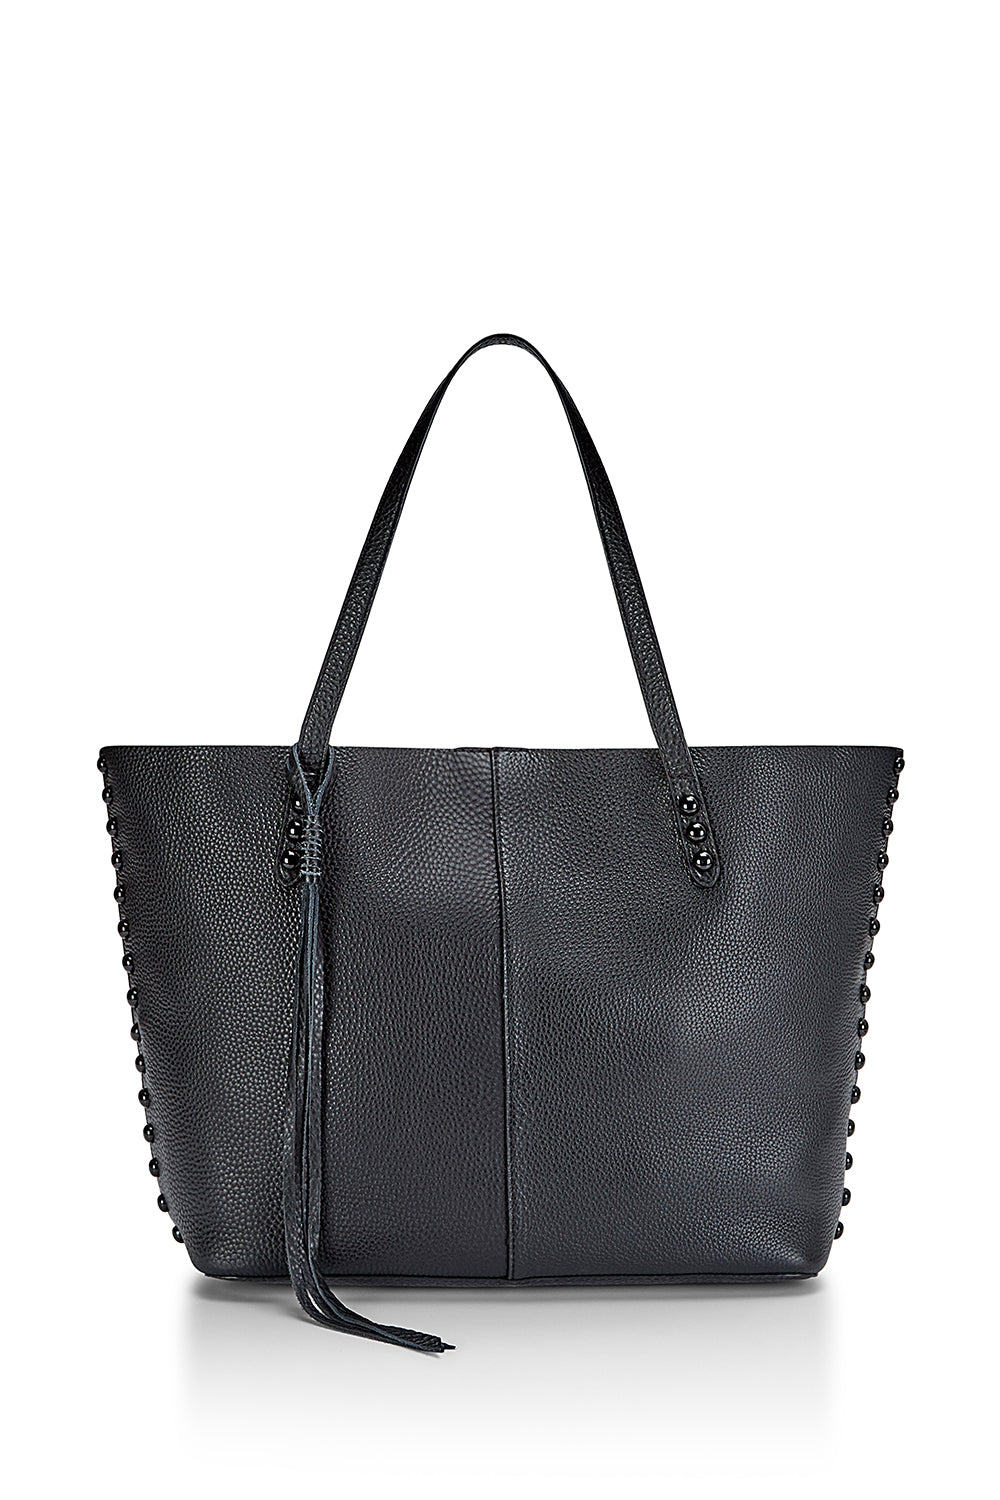 61b771800 Unlined Tote With Dome Studs – Rebecca Minkoff